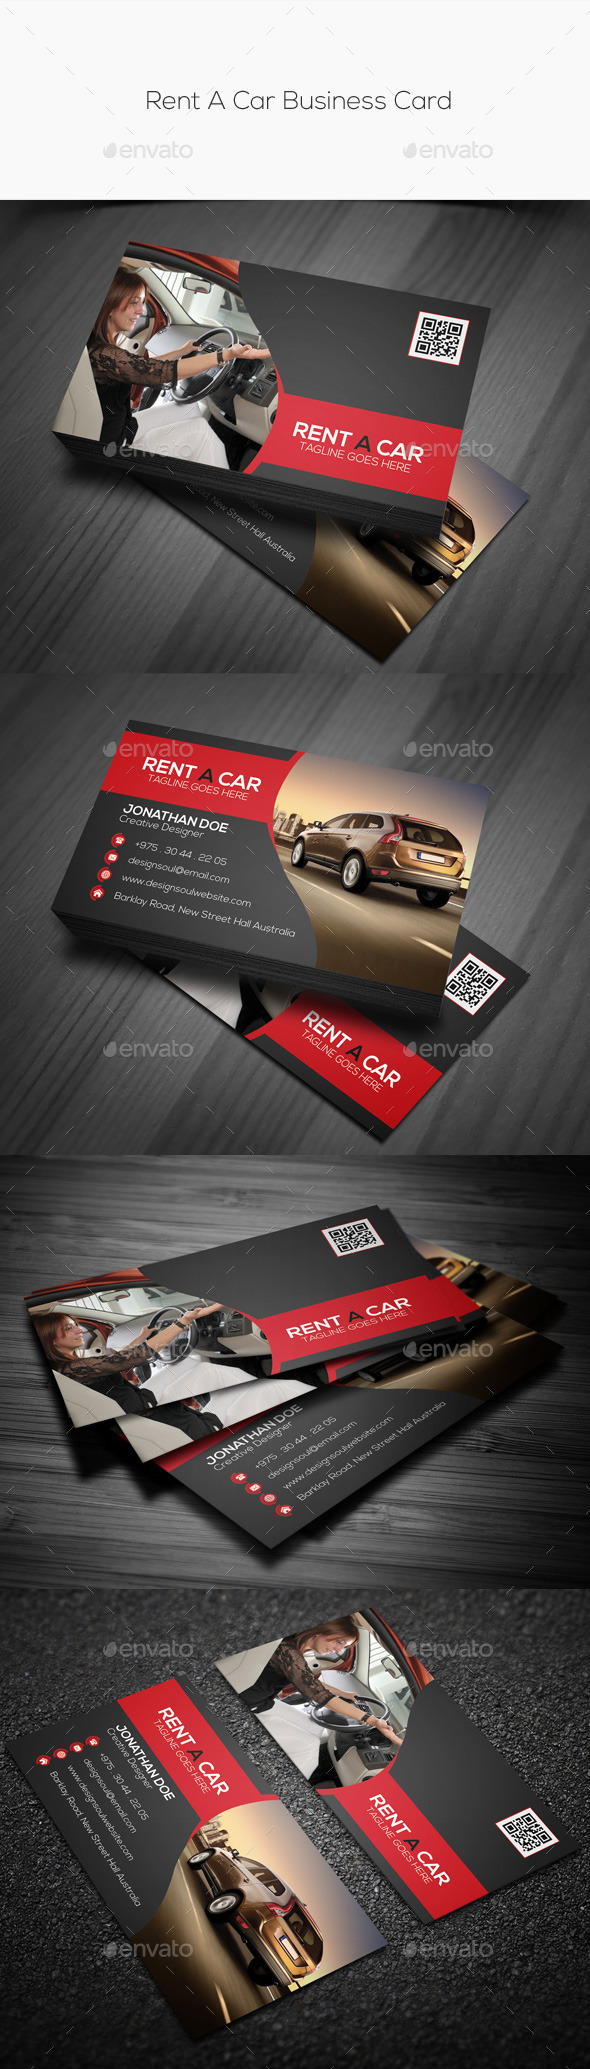 GraphicRiver Rent A Car Business Card 10445042